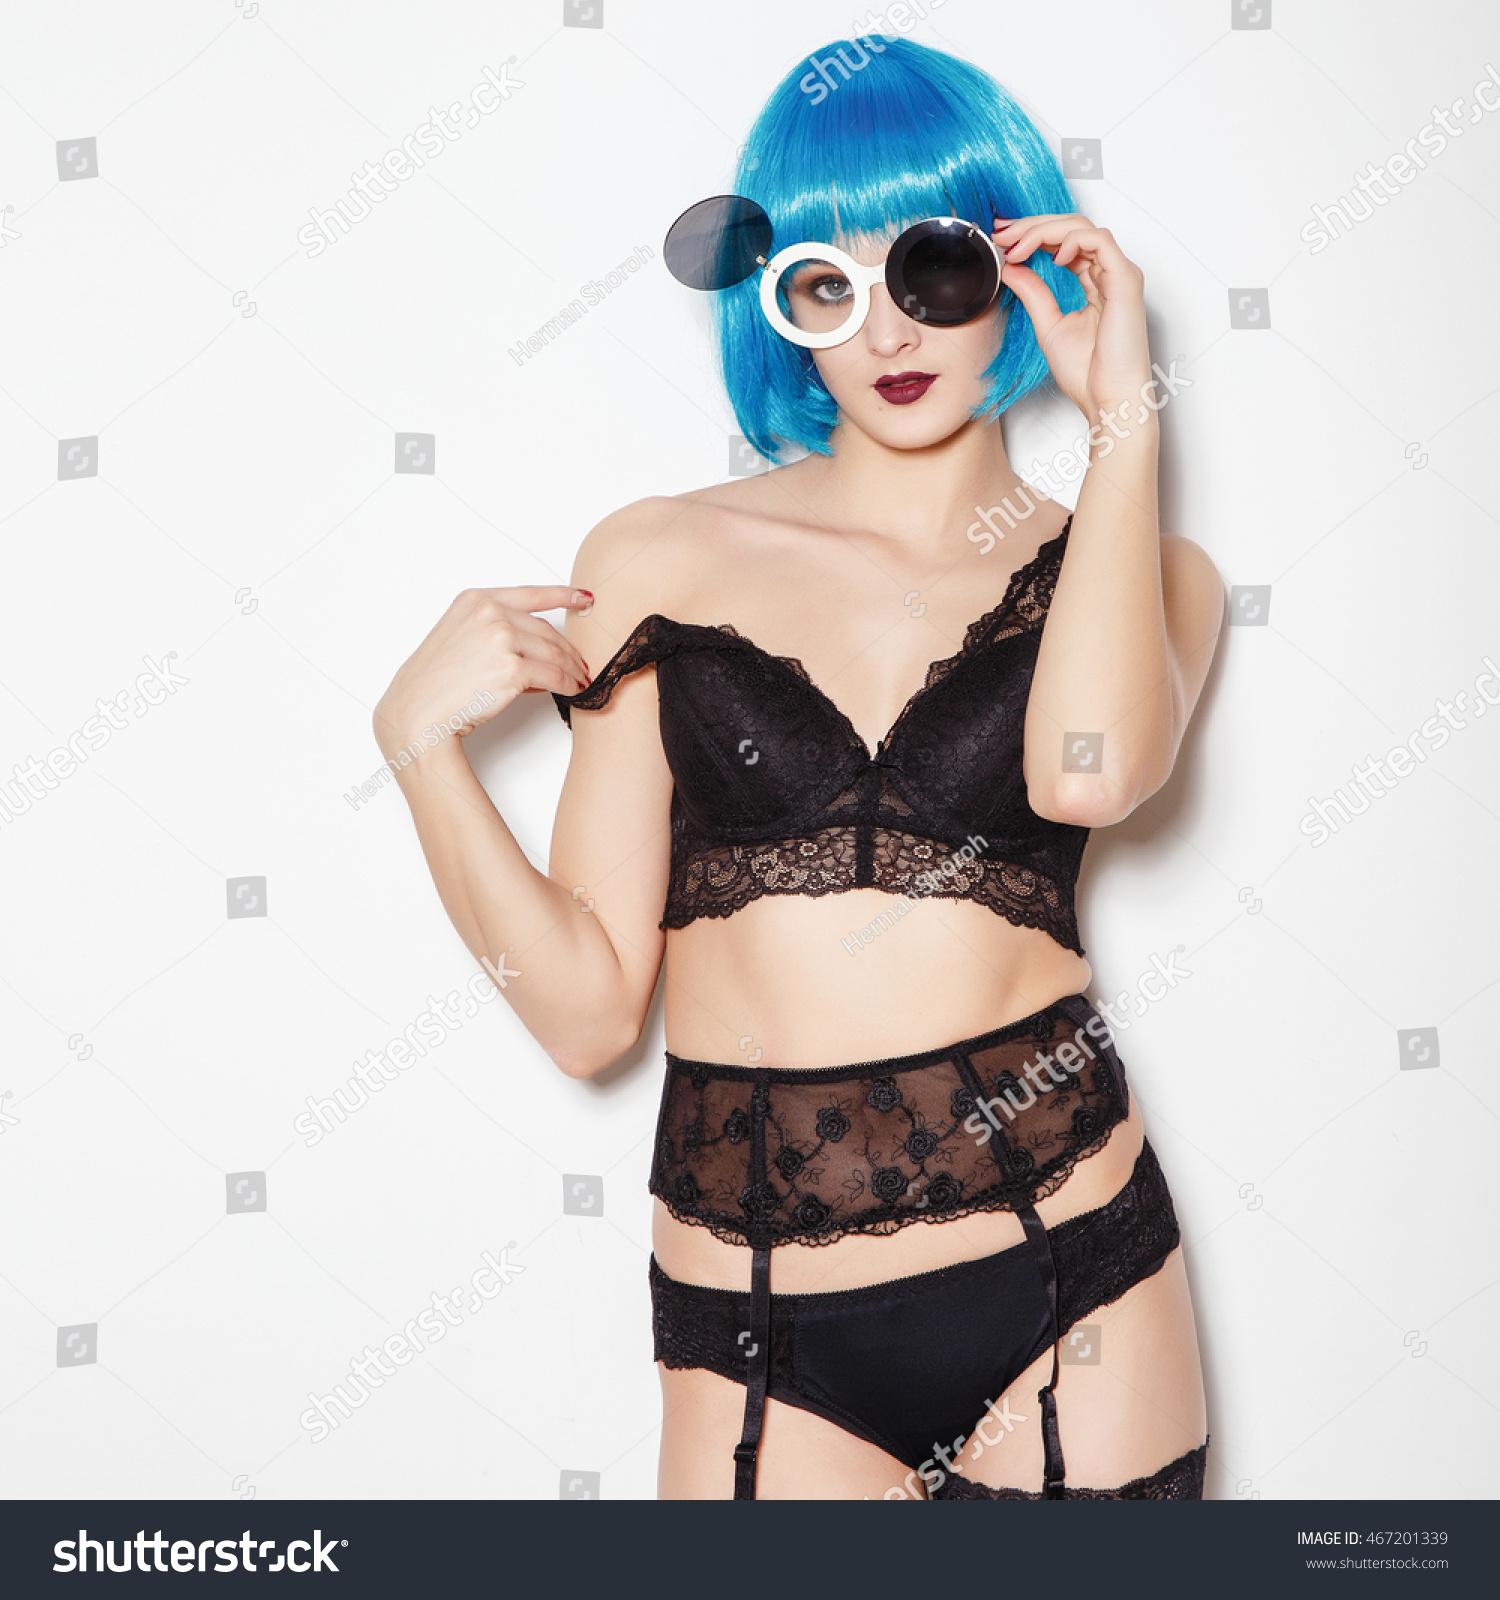 210ac0b8e8 ... glamor stylish steam punk young woman model with perfect sunbathed body  with red lips crazy eyeglasses in the black underwear sign on white  background